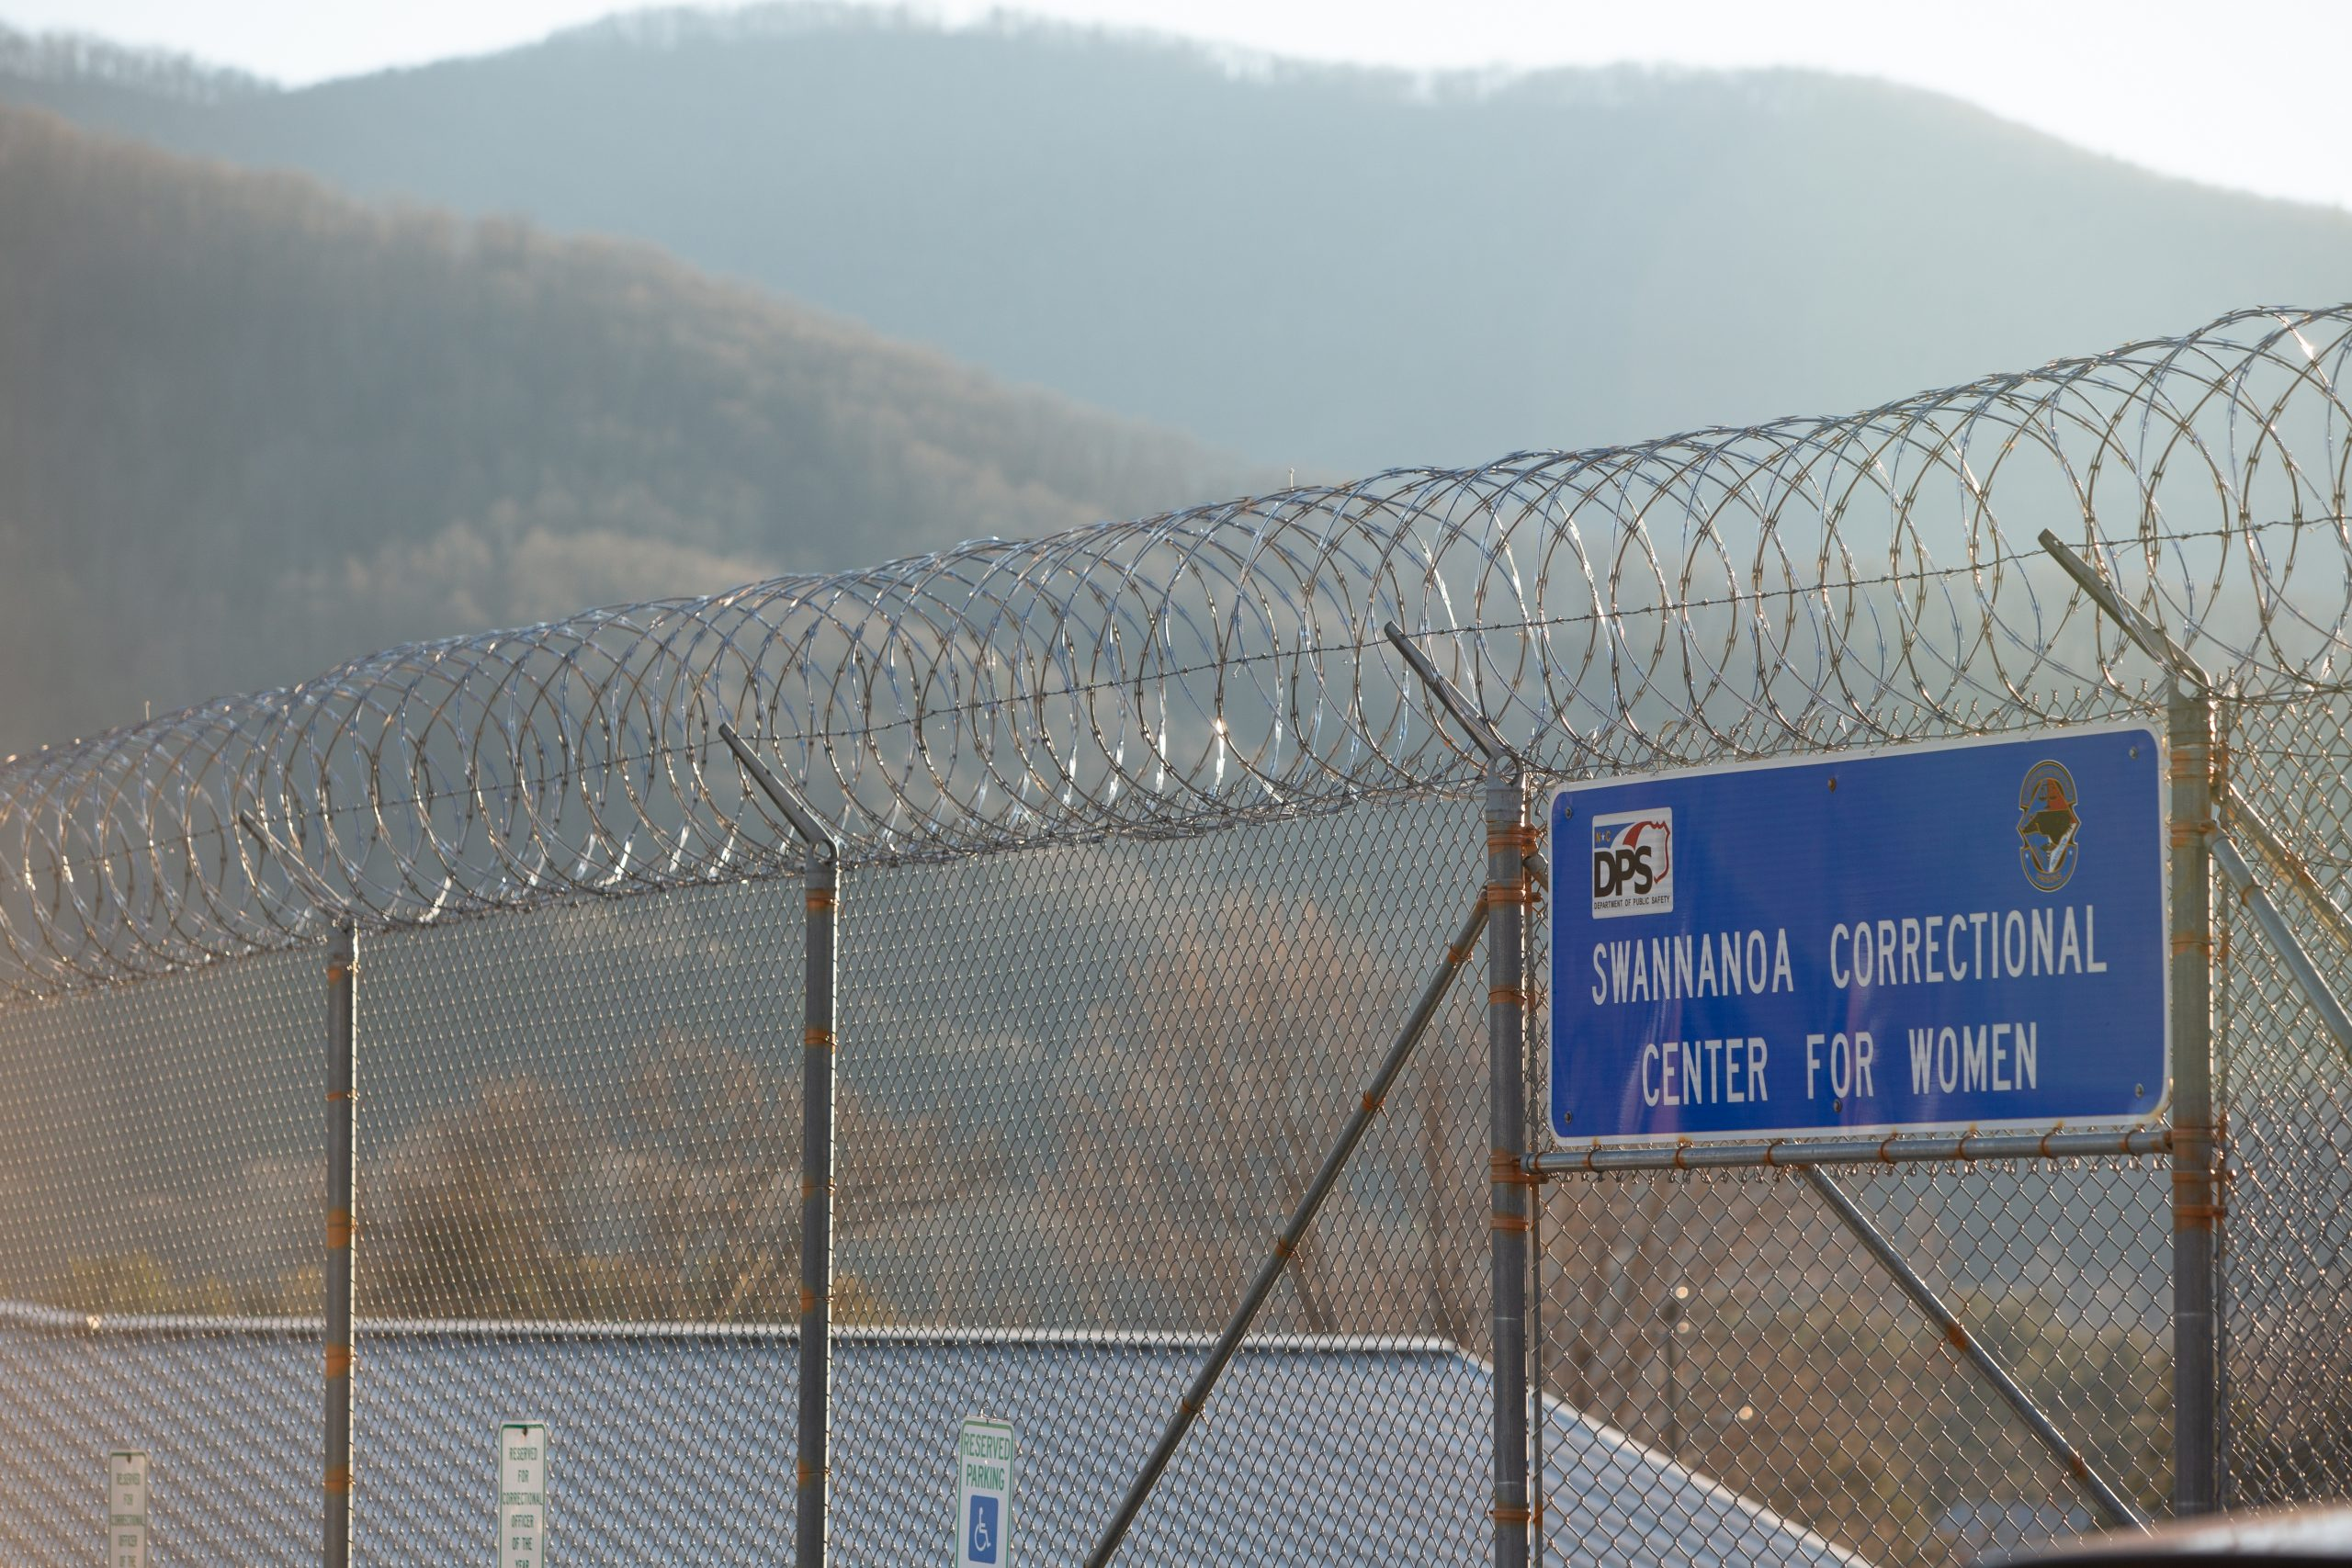 NC prisons settle NAACP case, agree to fast track release of 3,500 inmates